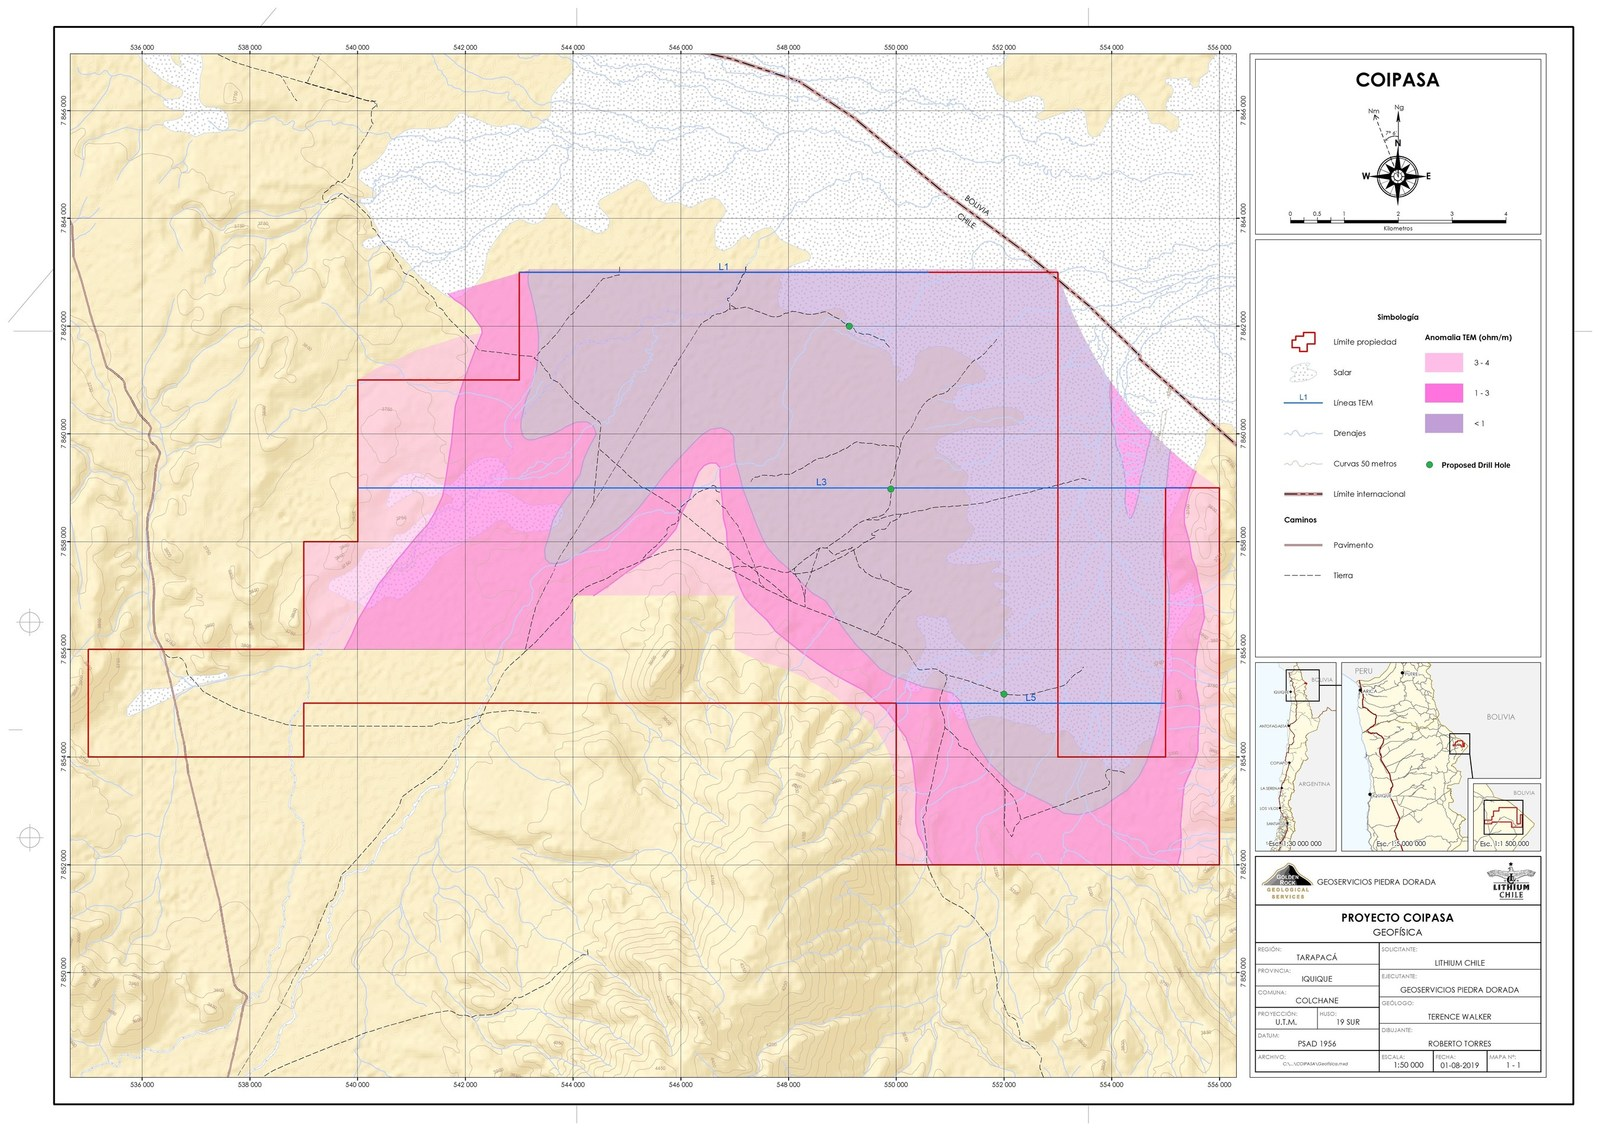 Coipasa Property - TEM and Proposed Drill Hole Location